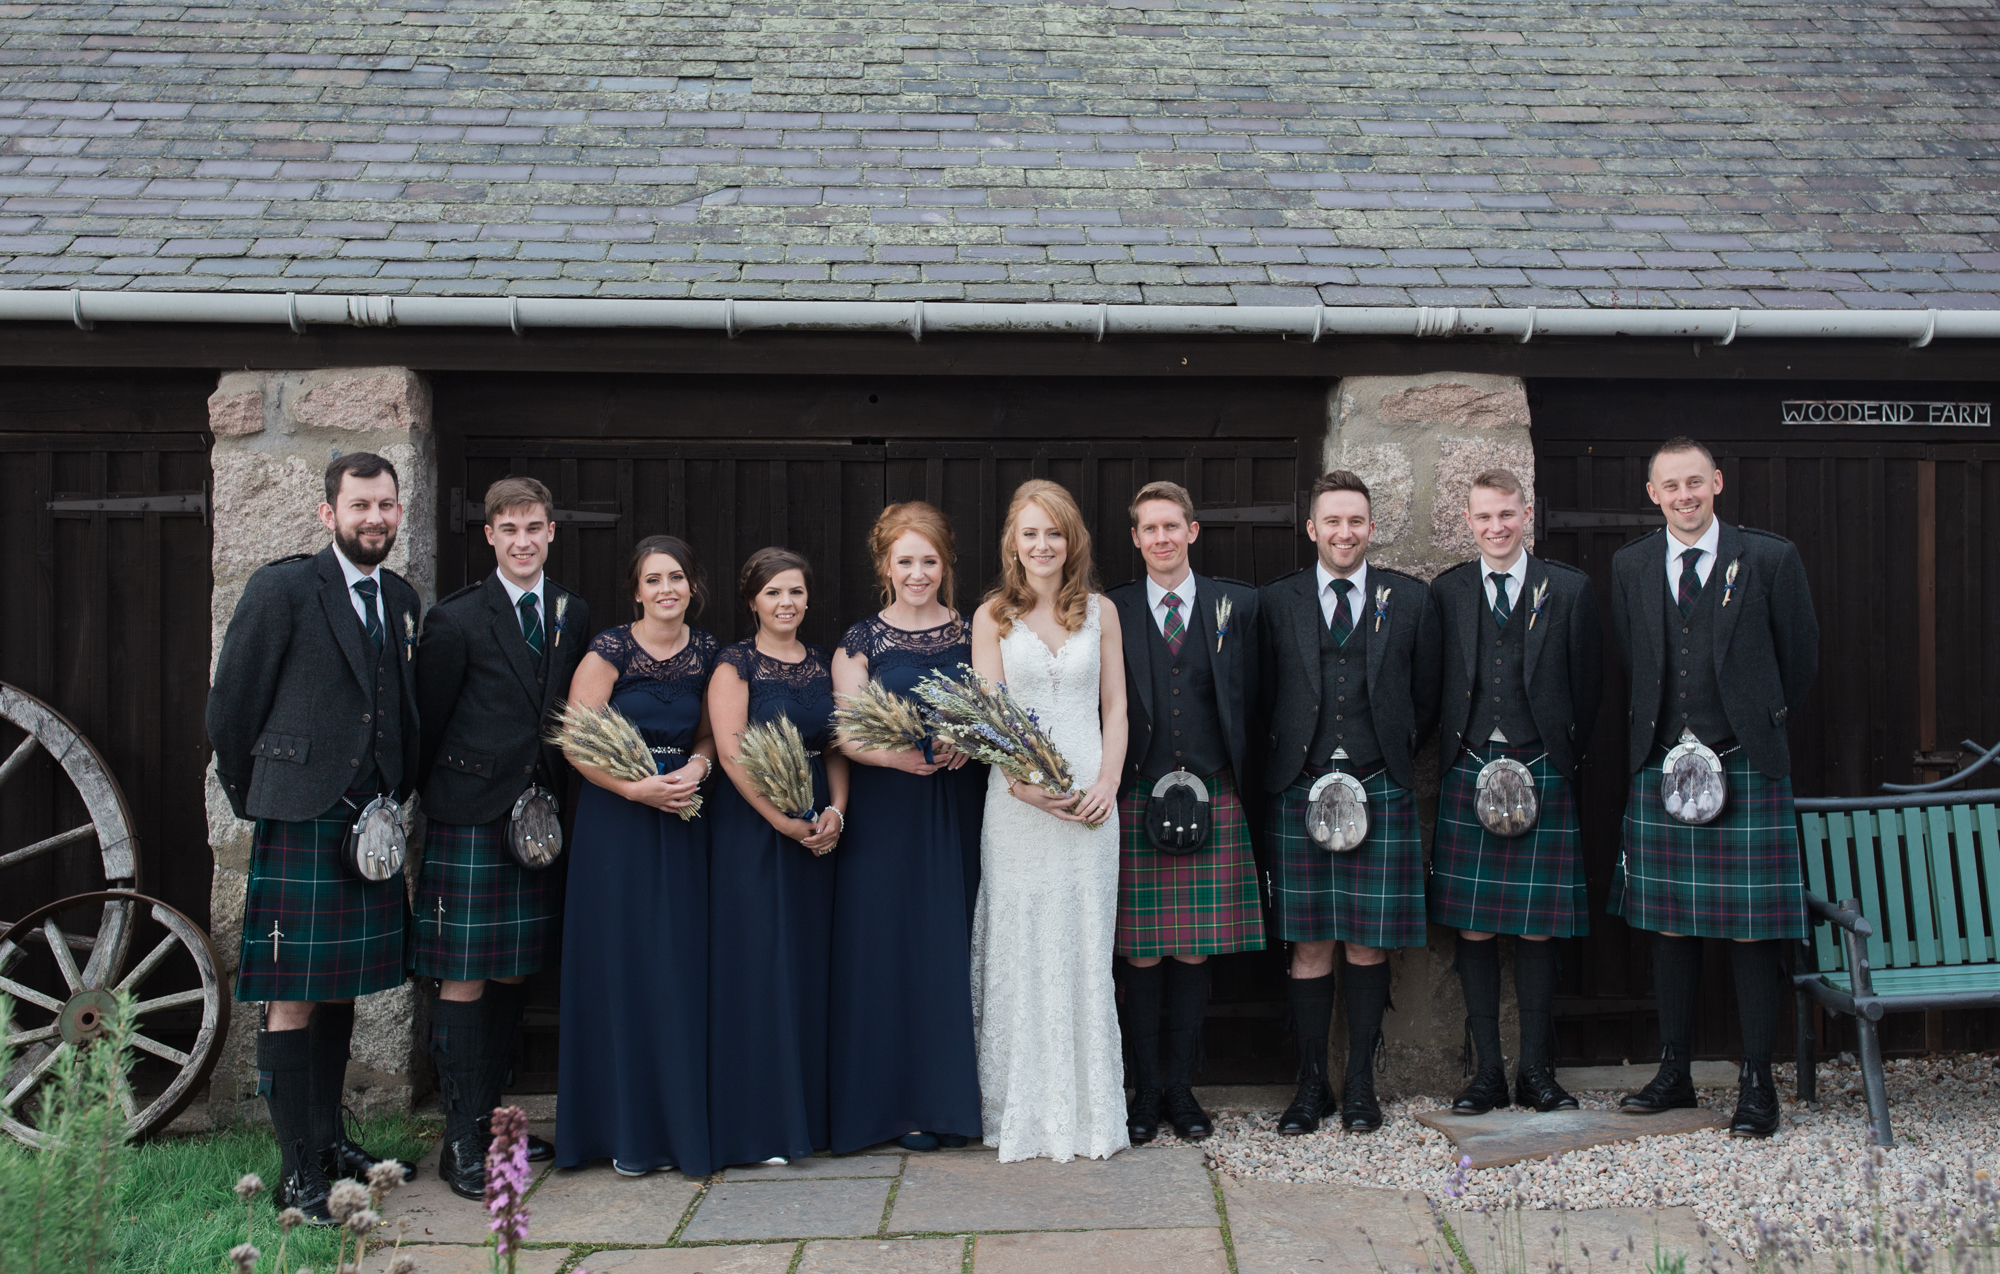 woodend barn wedding, woodend barn Banchory